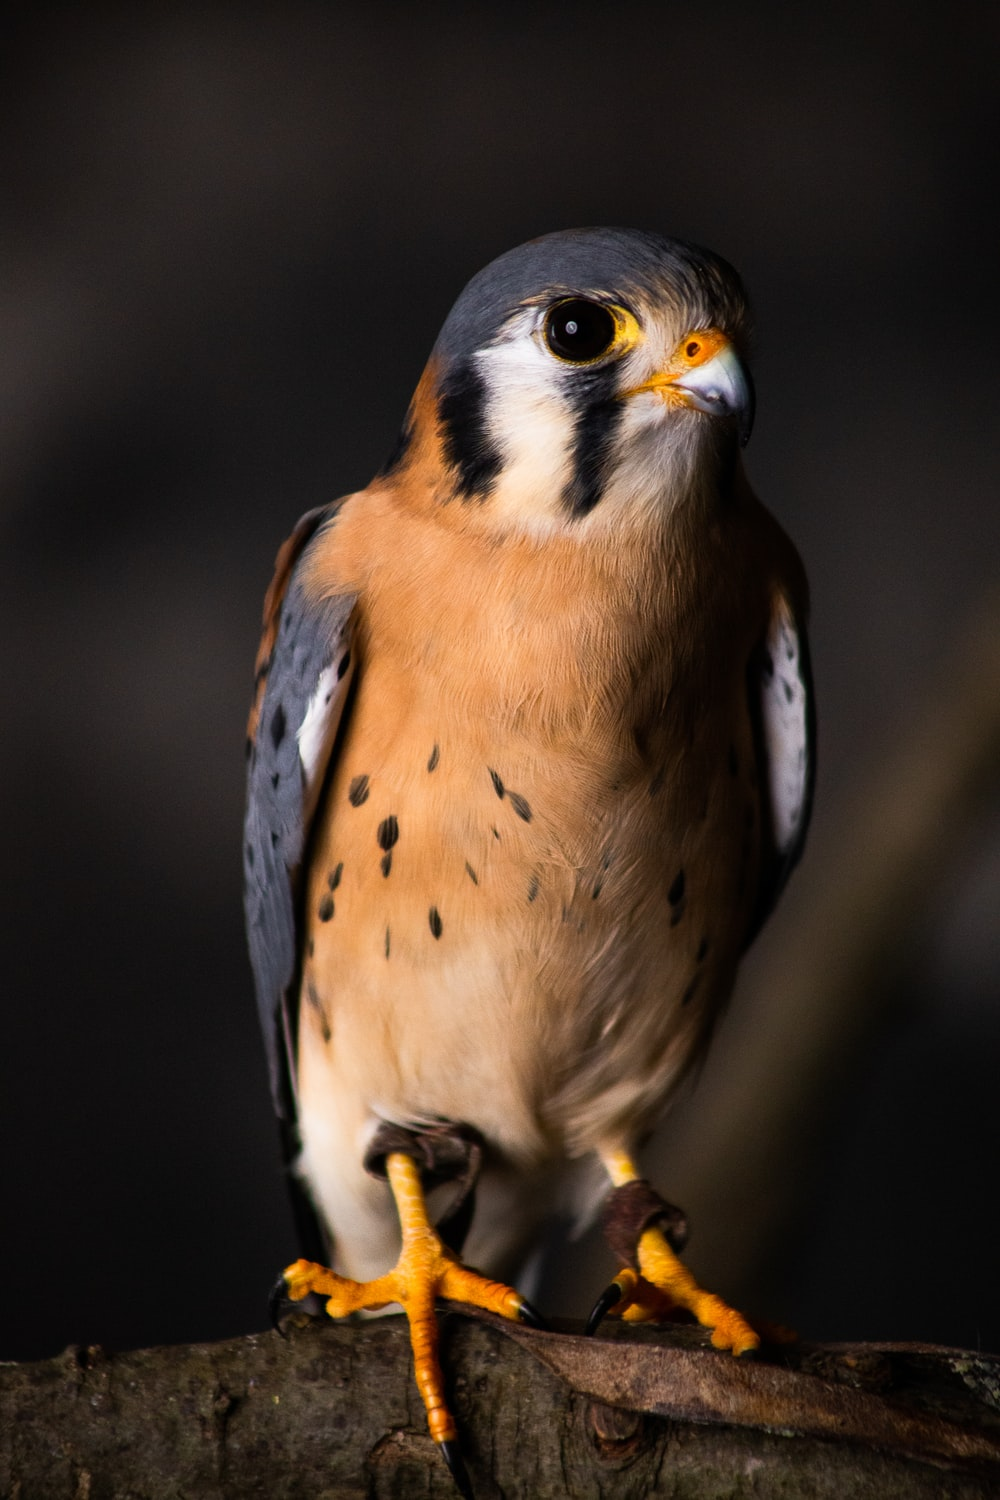 brown and white bird in close up photography